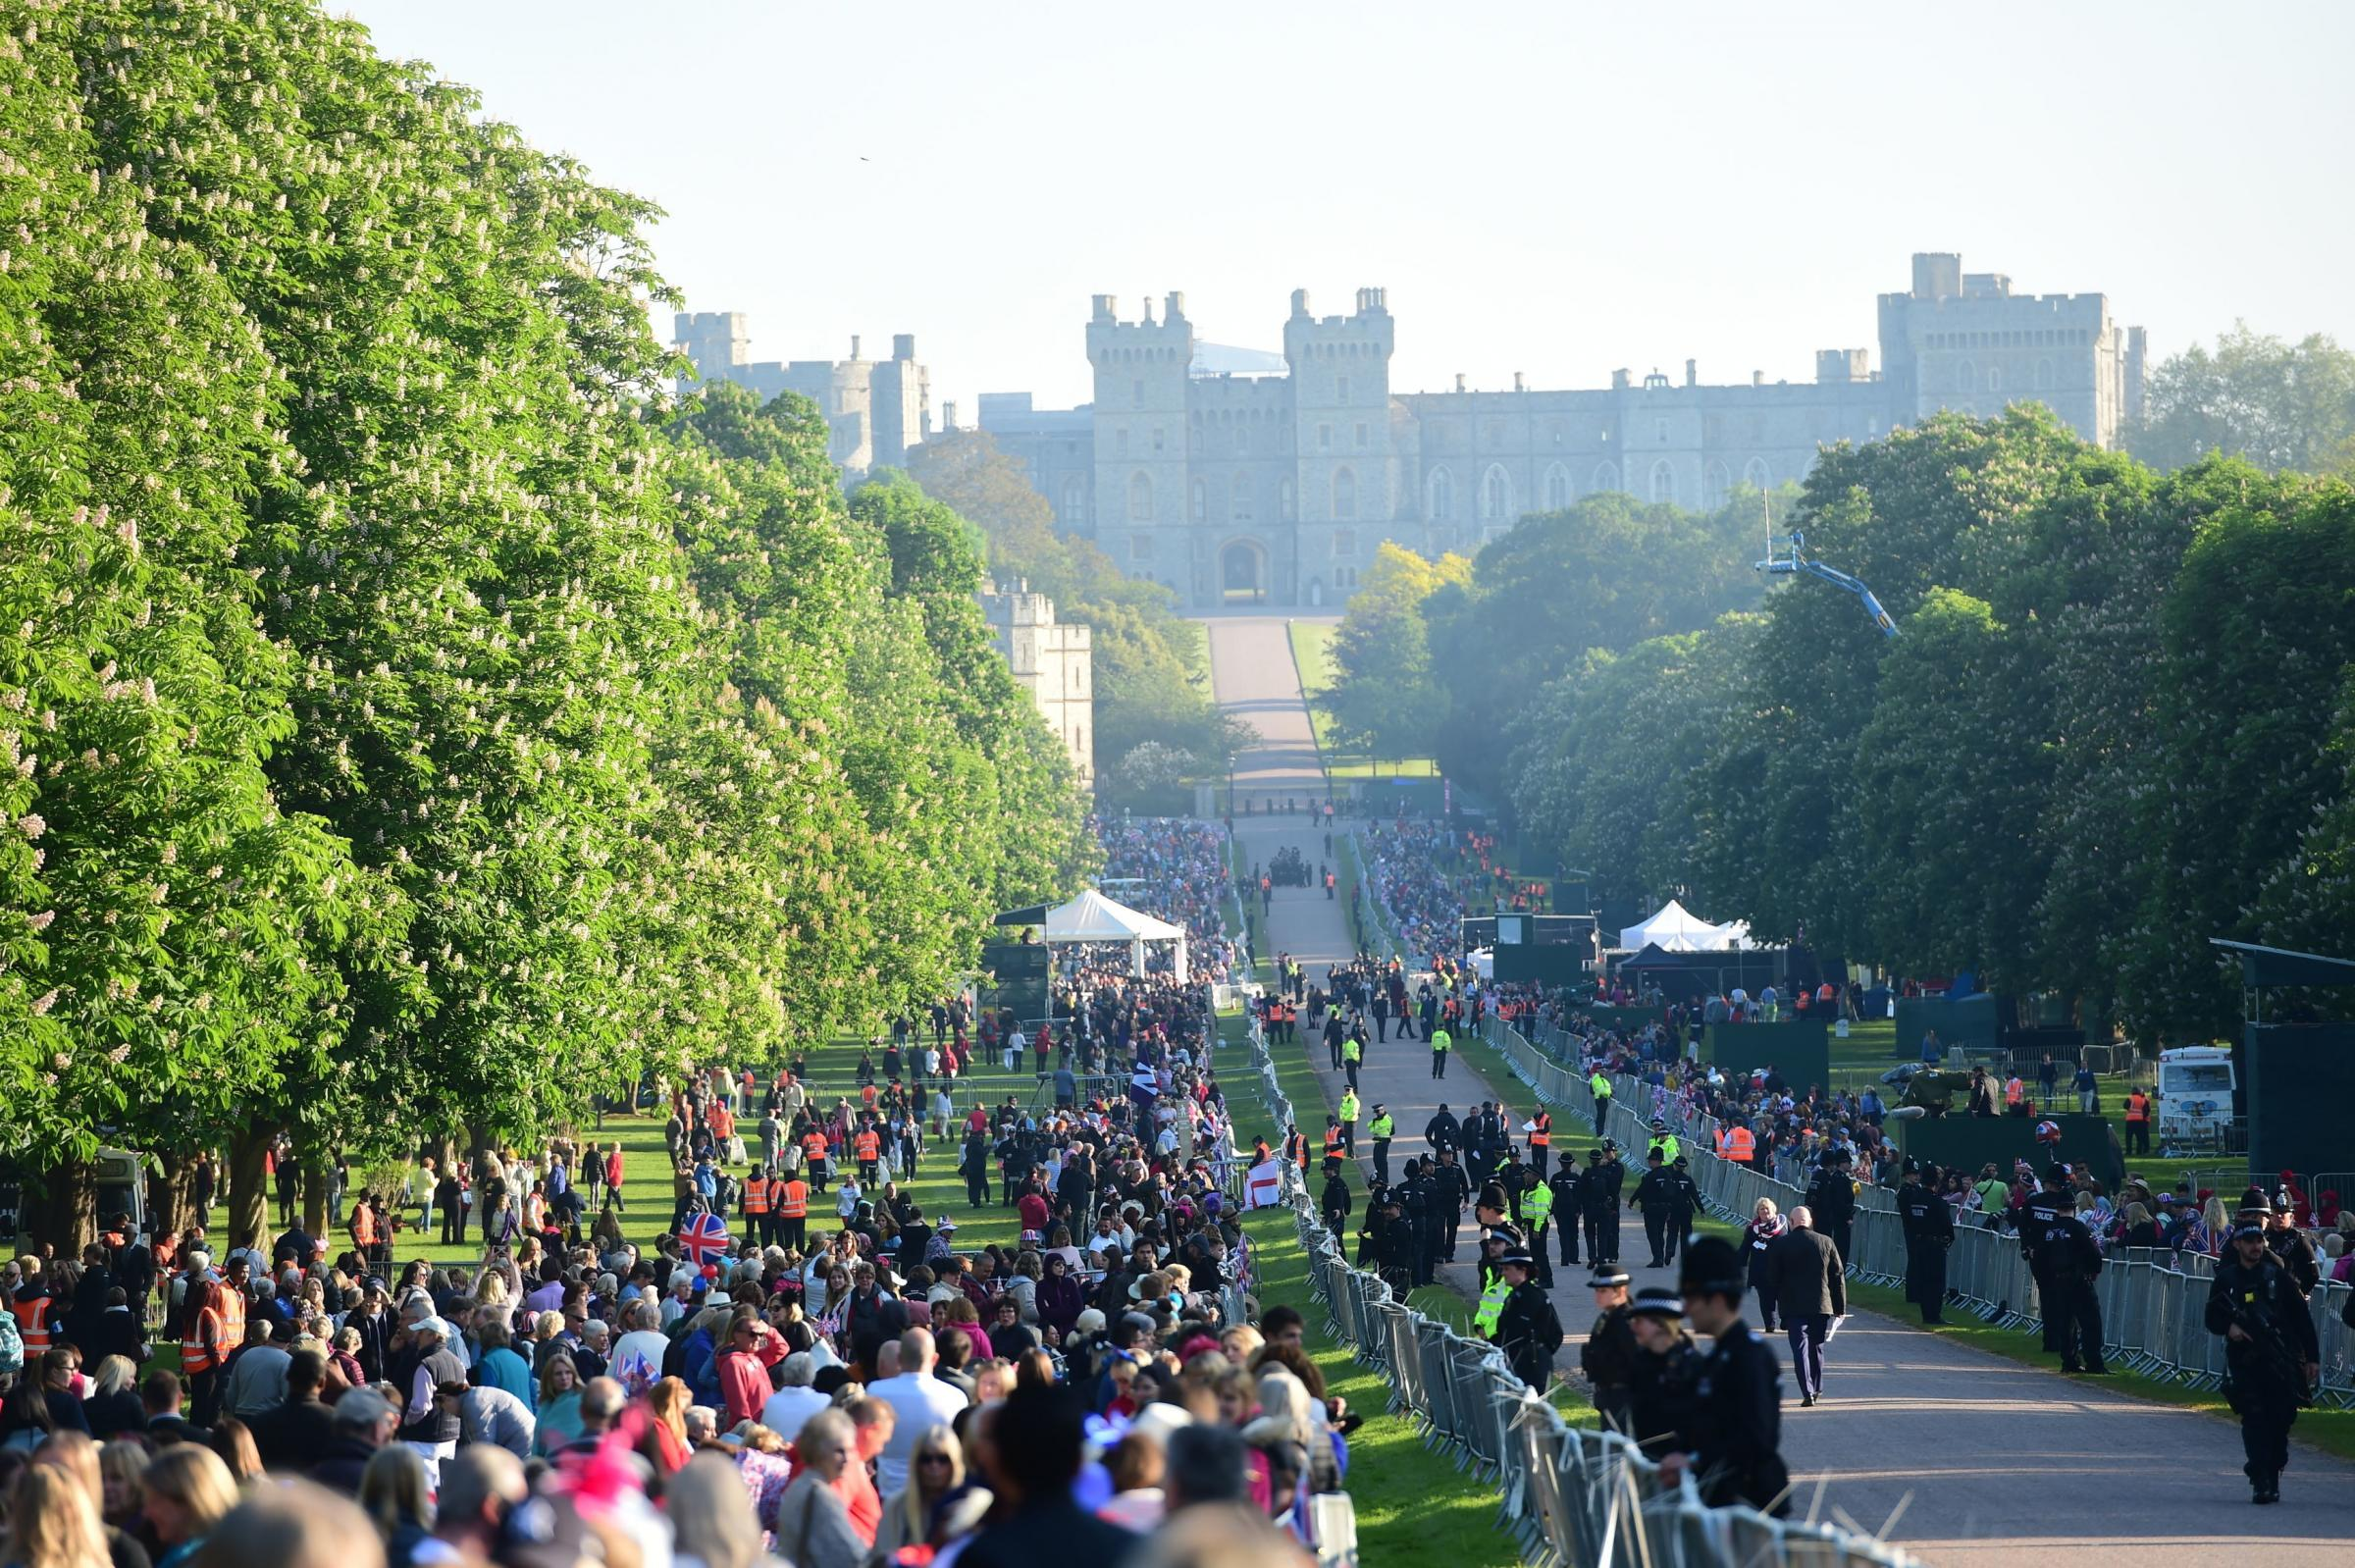 ROYAL WEDDING: Spectators arrive on the Long Walk ahead of the wedding of Prince Harry and Meghan Markle. Credit PA